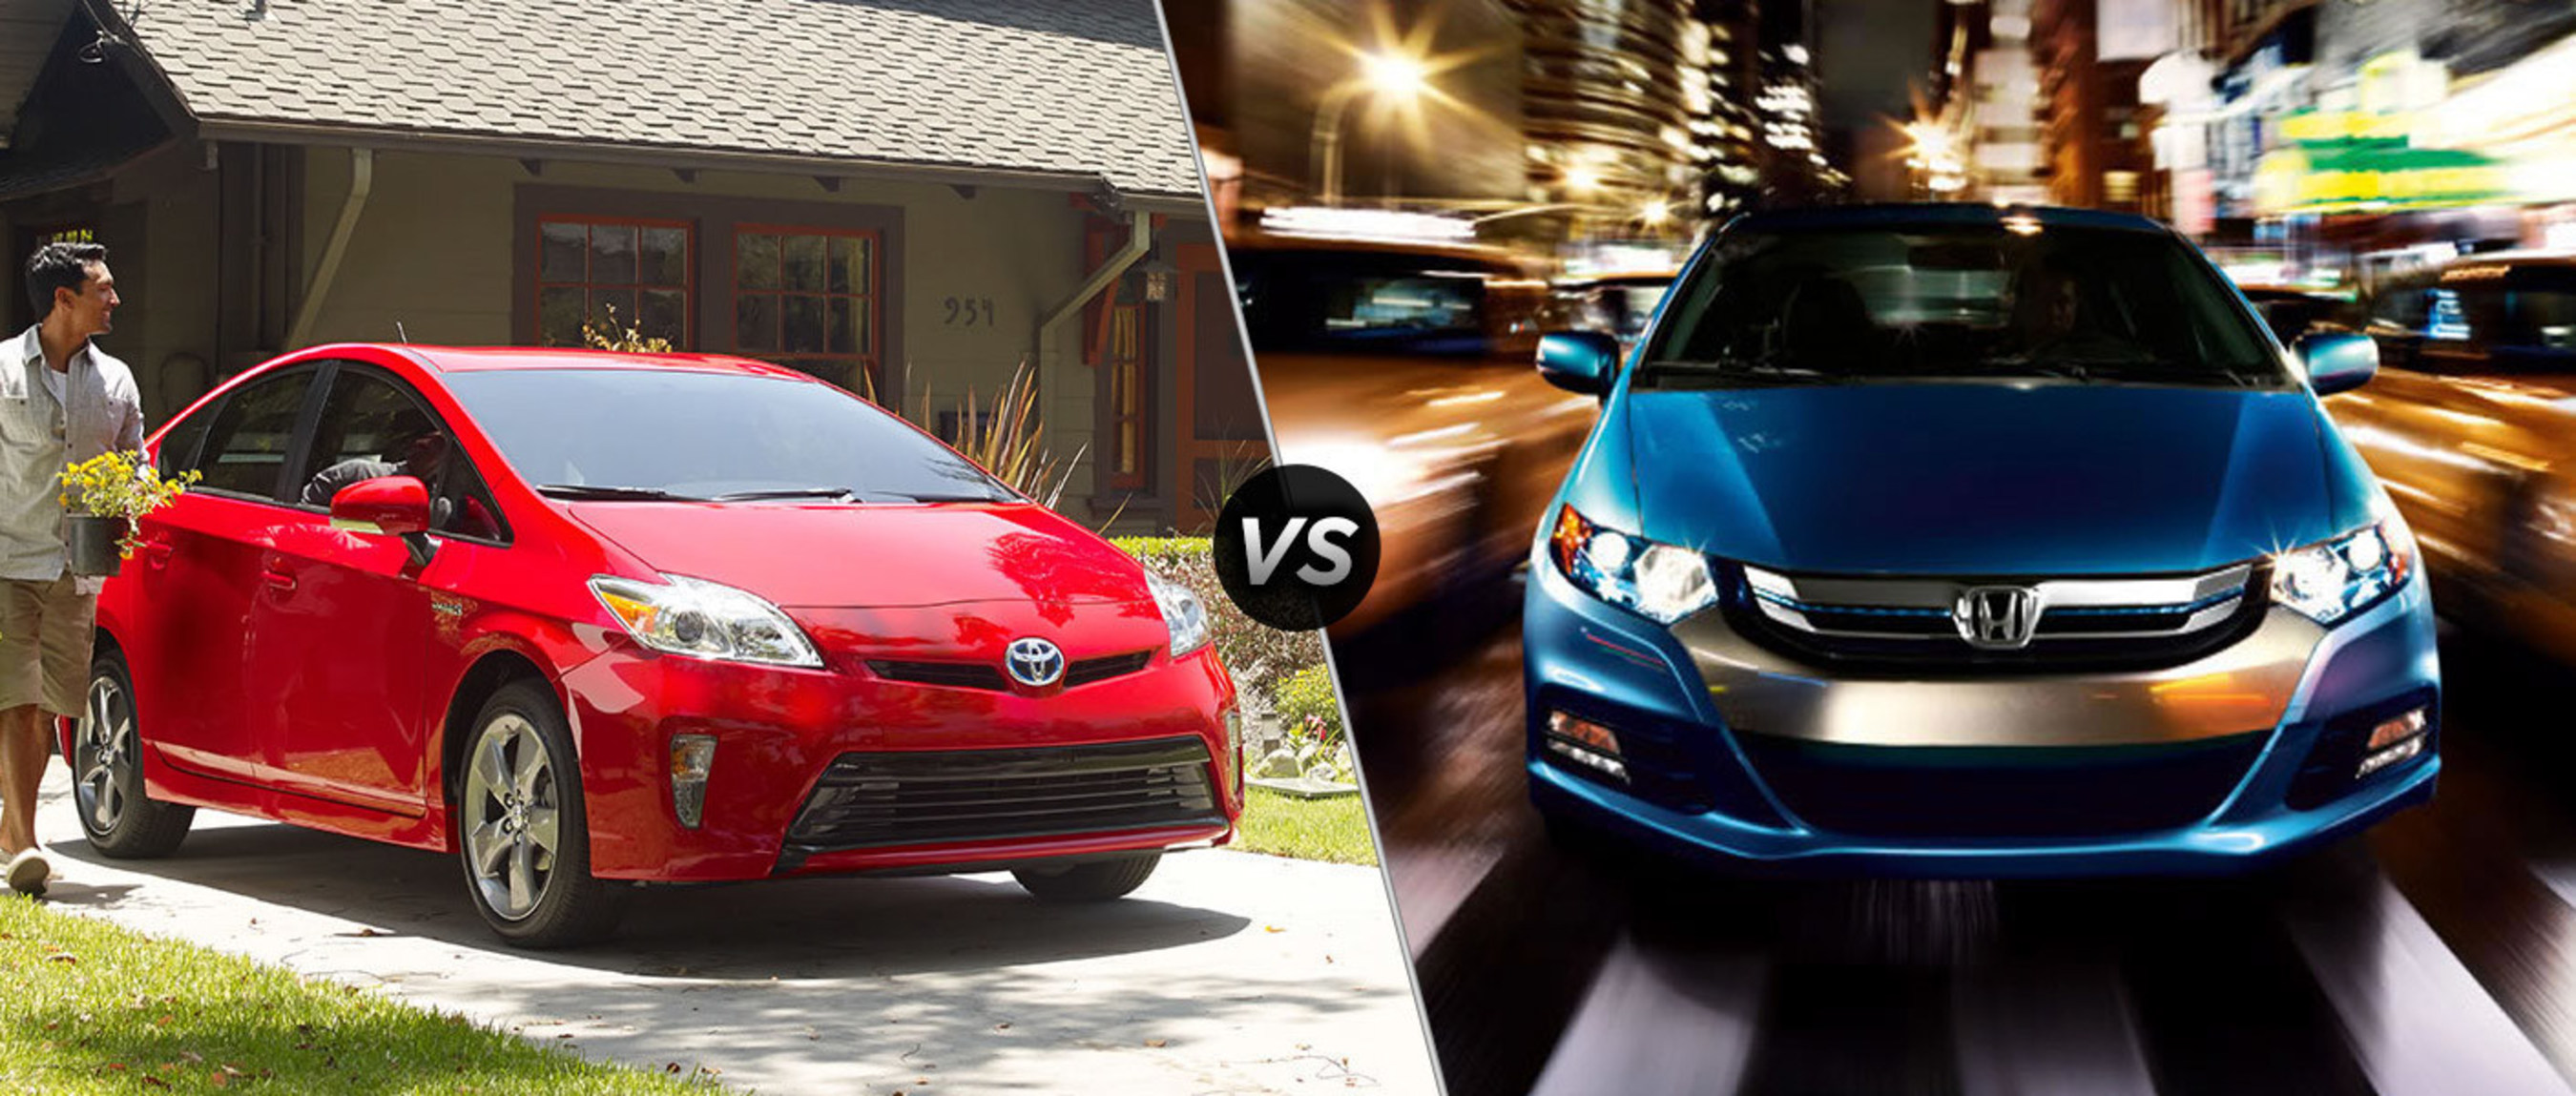 2015 Toyota Prius continues to impress customers